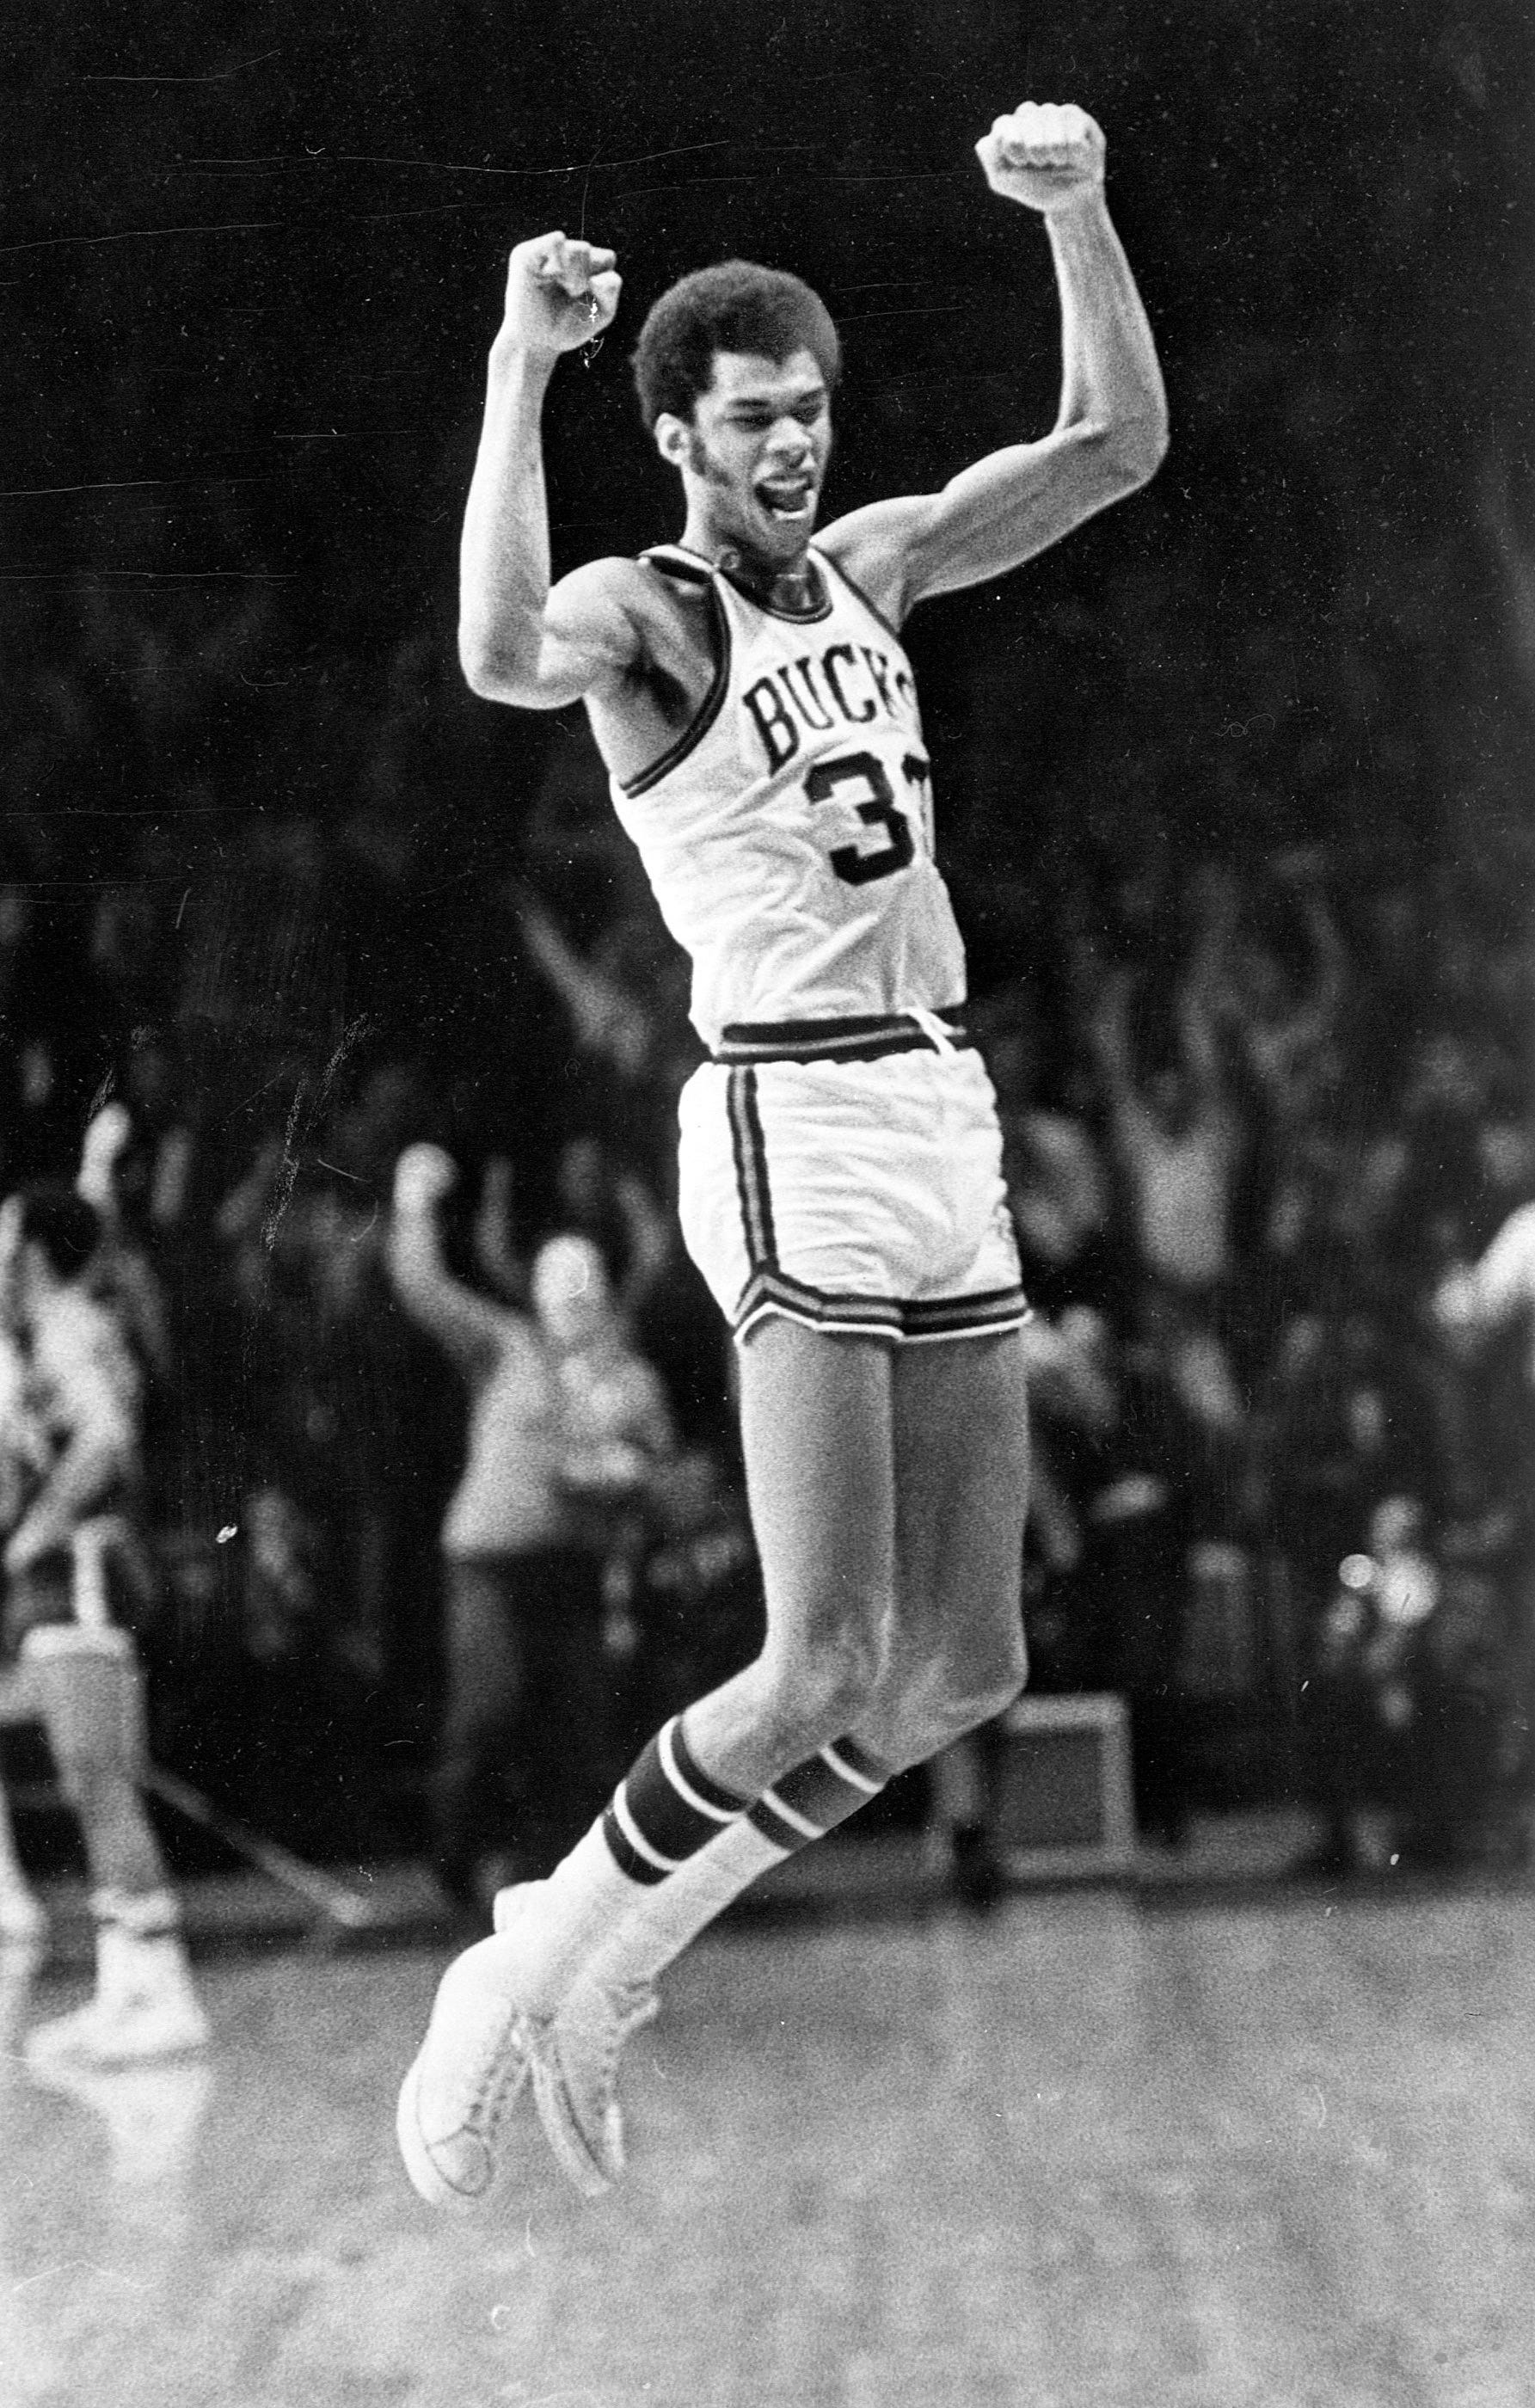 Kareem Abdul-Jabbar's NBA debut captivated the country 50 years ago